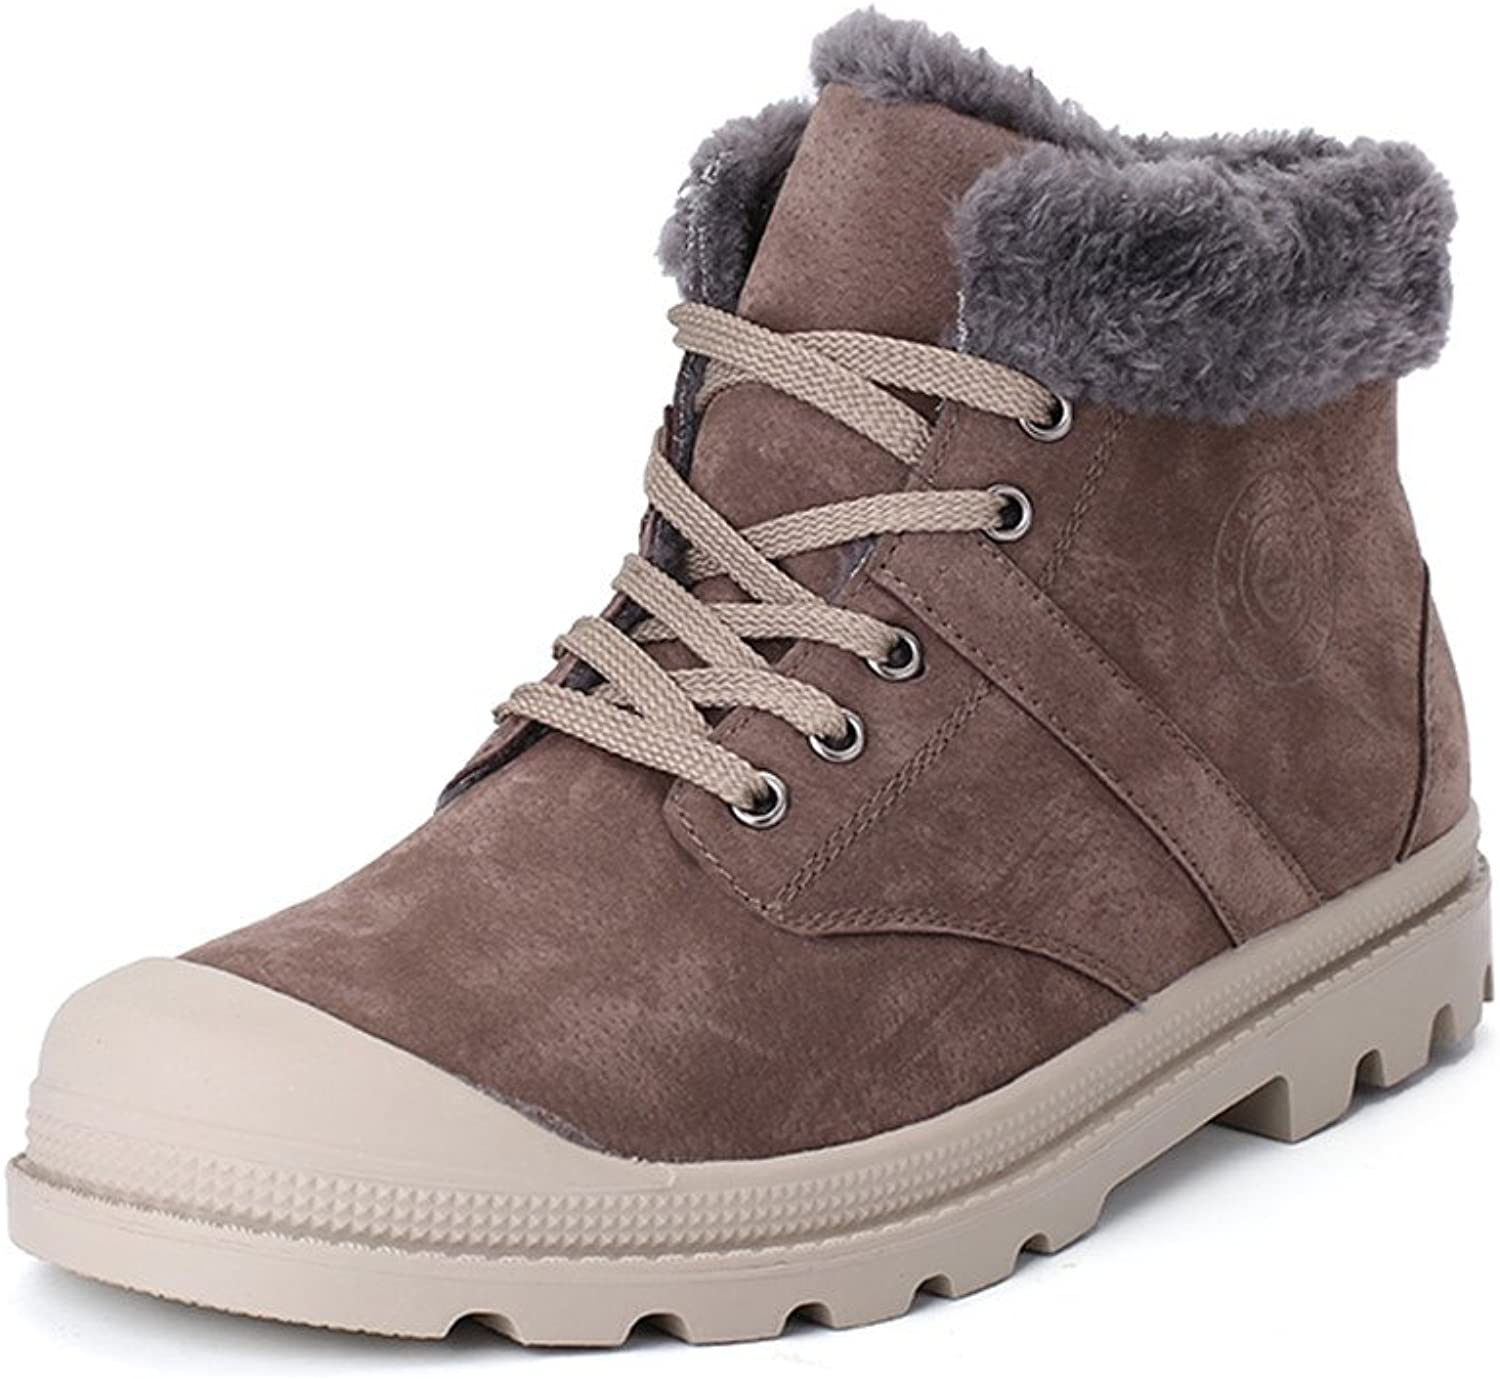 DUODUO Men's 8909 Winter Suede Fur Lining Snow Boots